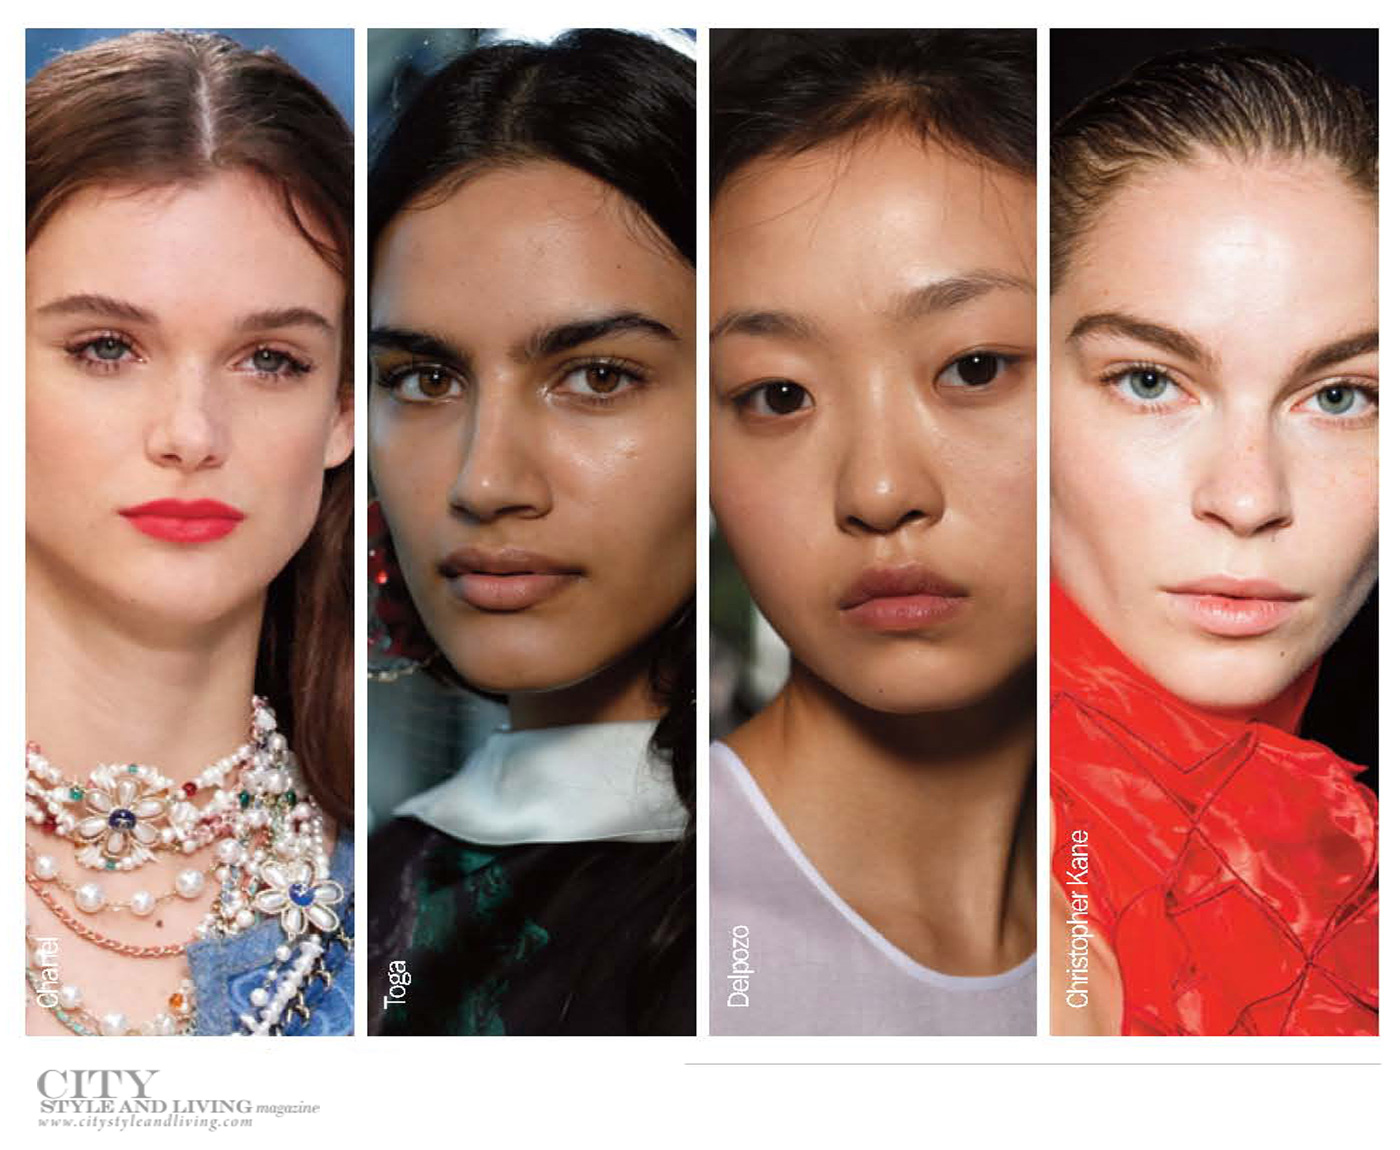 City Style and Living Magazine Summer 2019 Beauty Trends fresh face